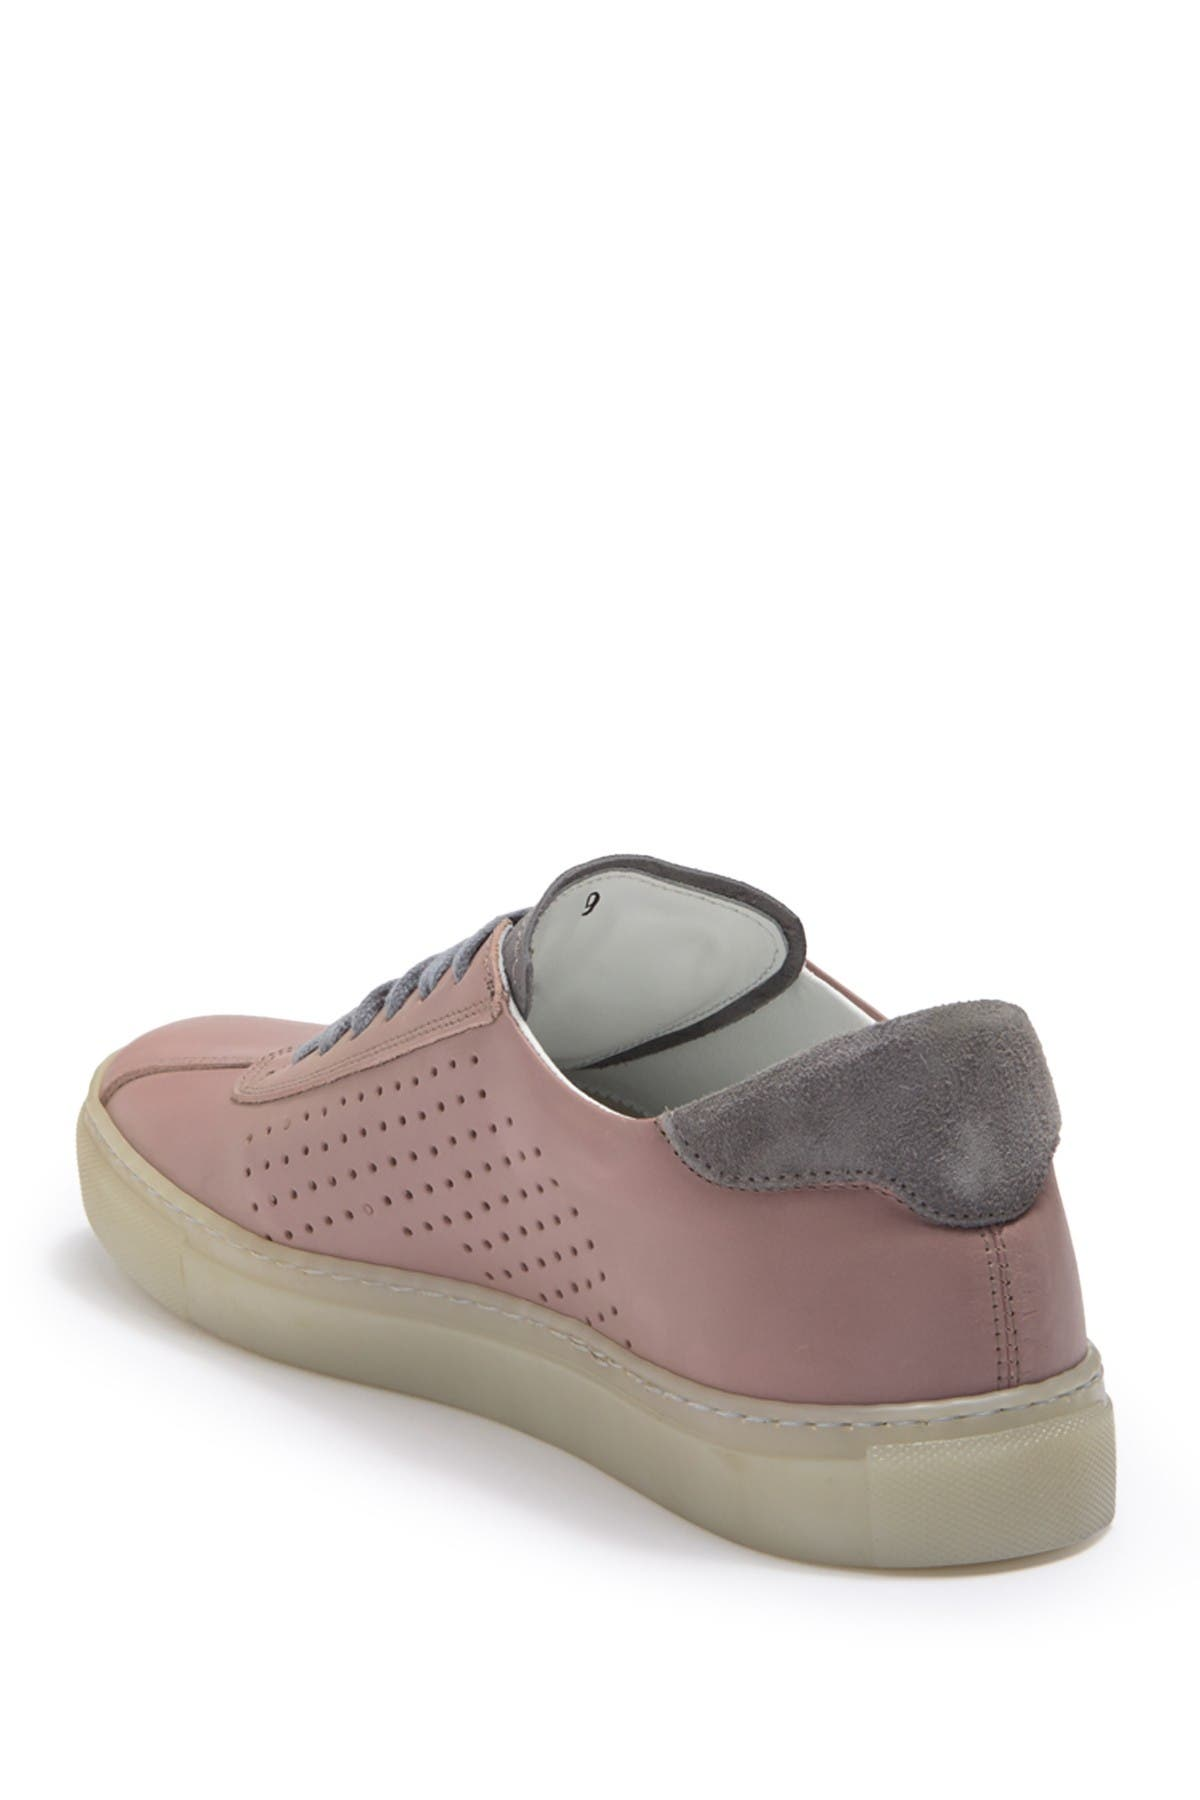 Image of Kenneth Cole New York Orson Sneaker